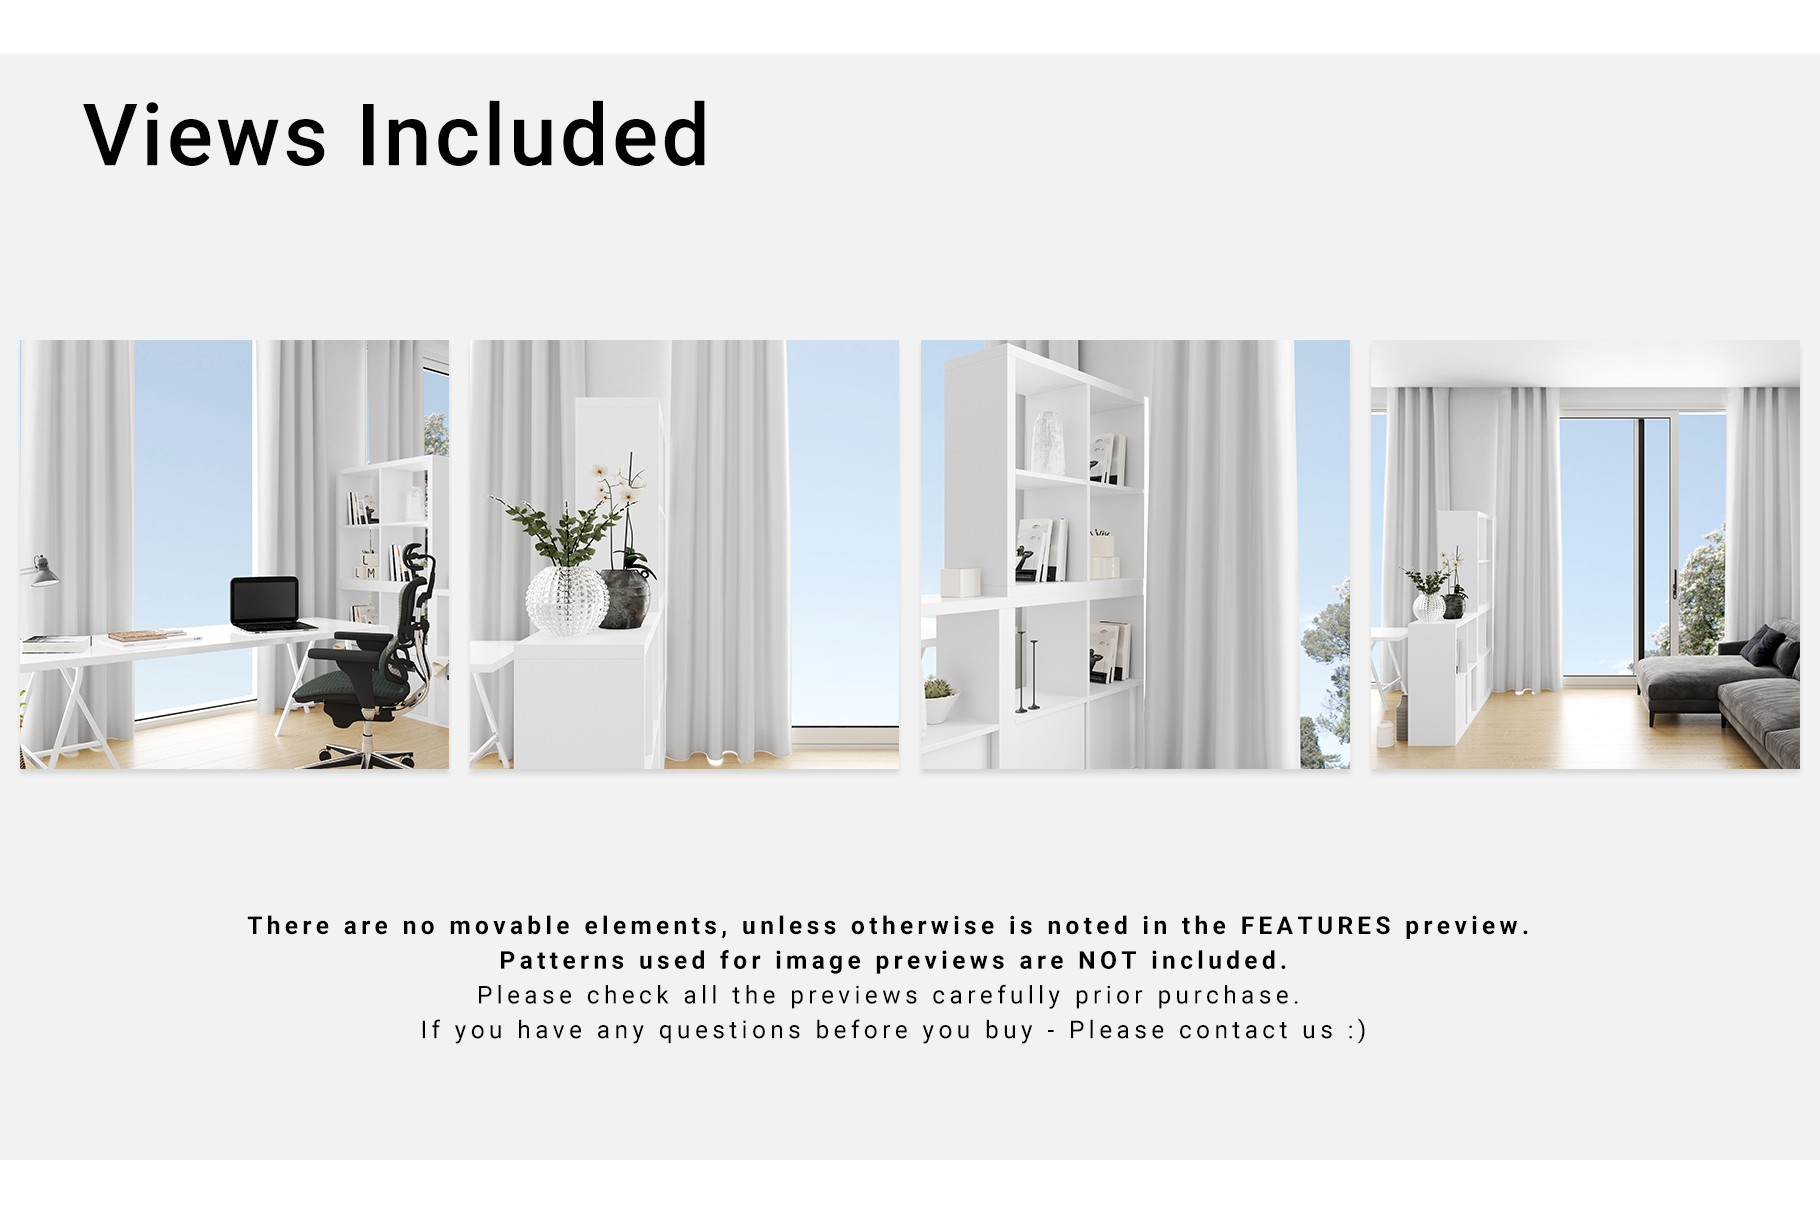 Home Office Textile - Long Curtains Mockup Set